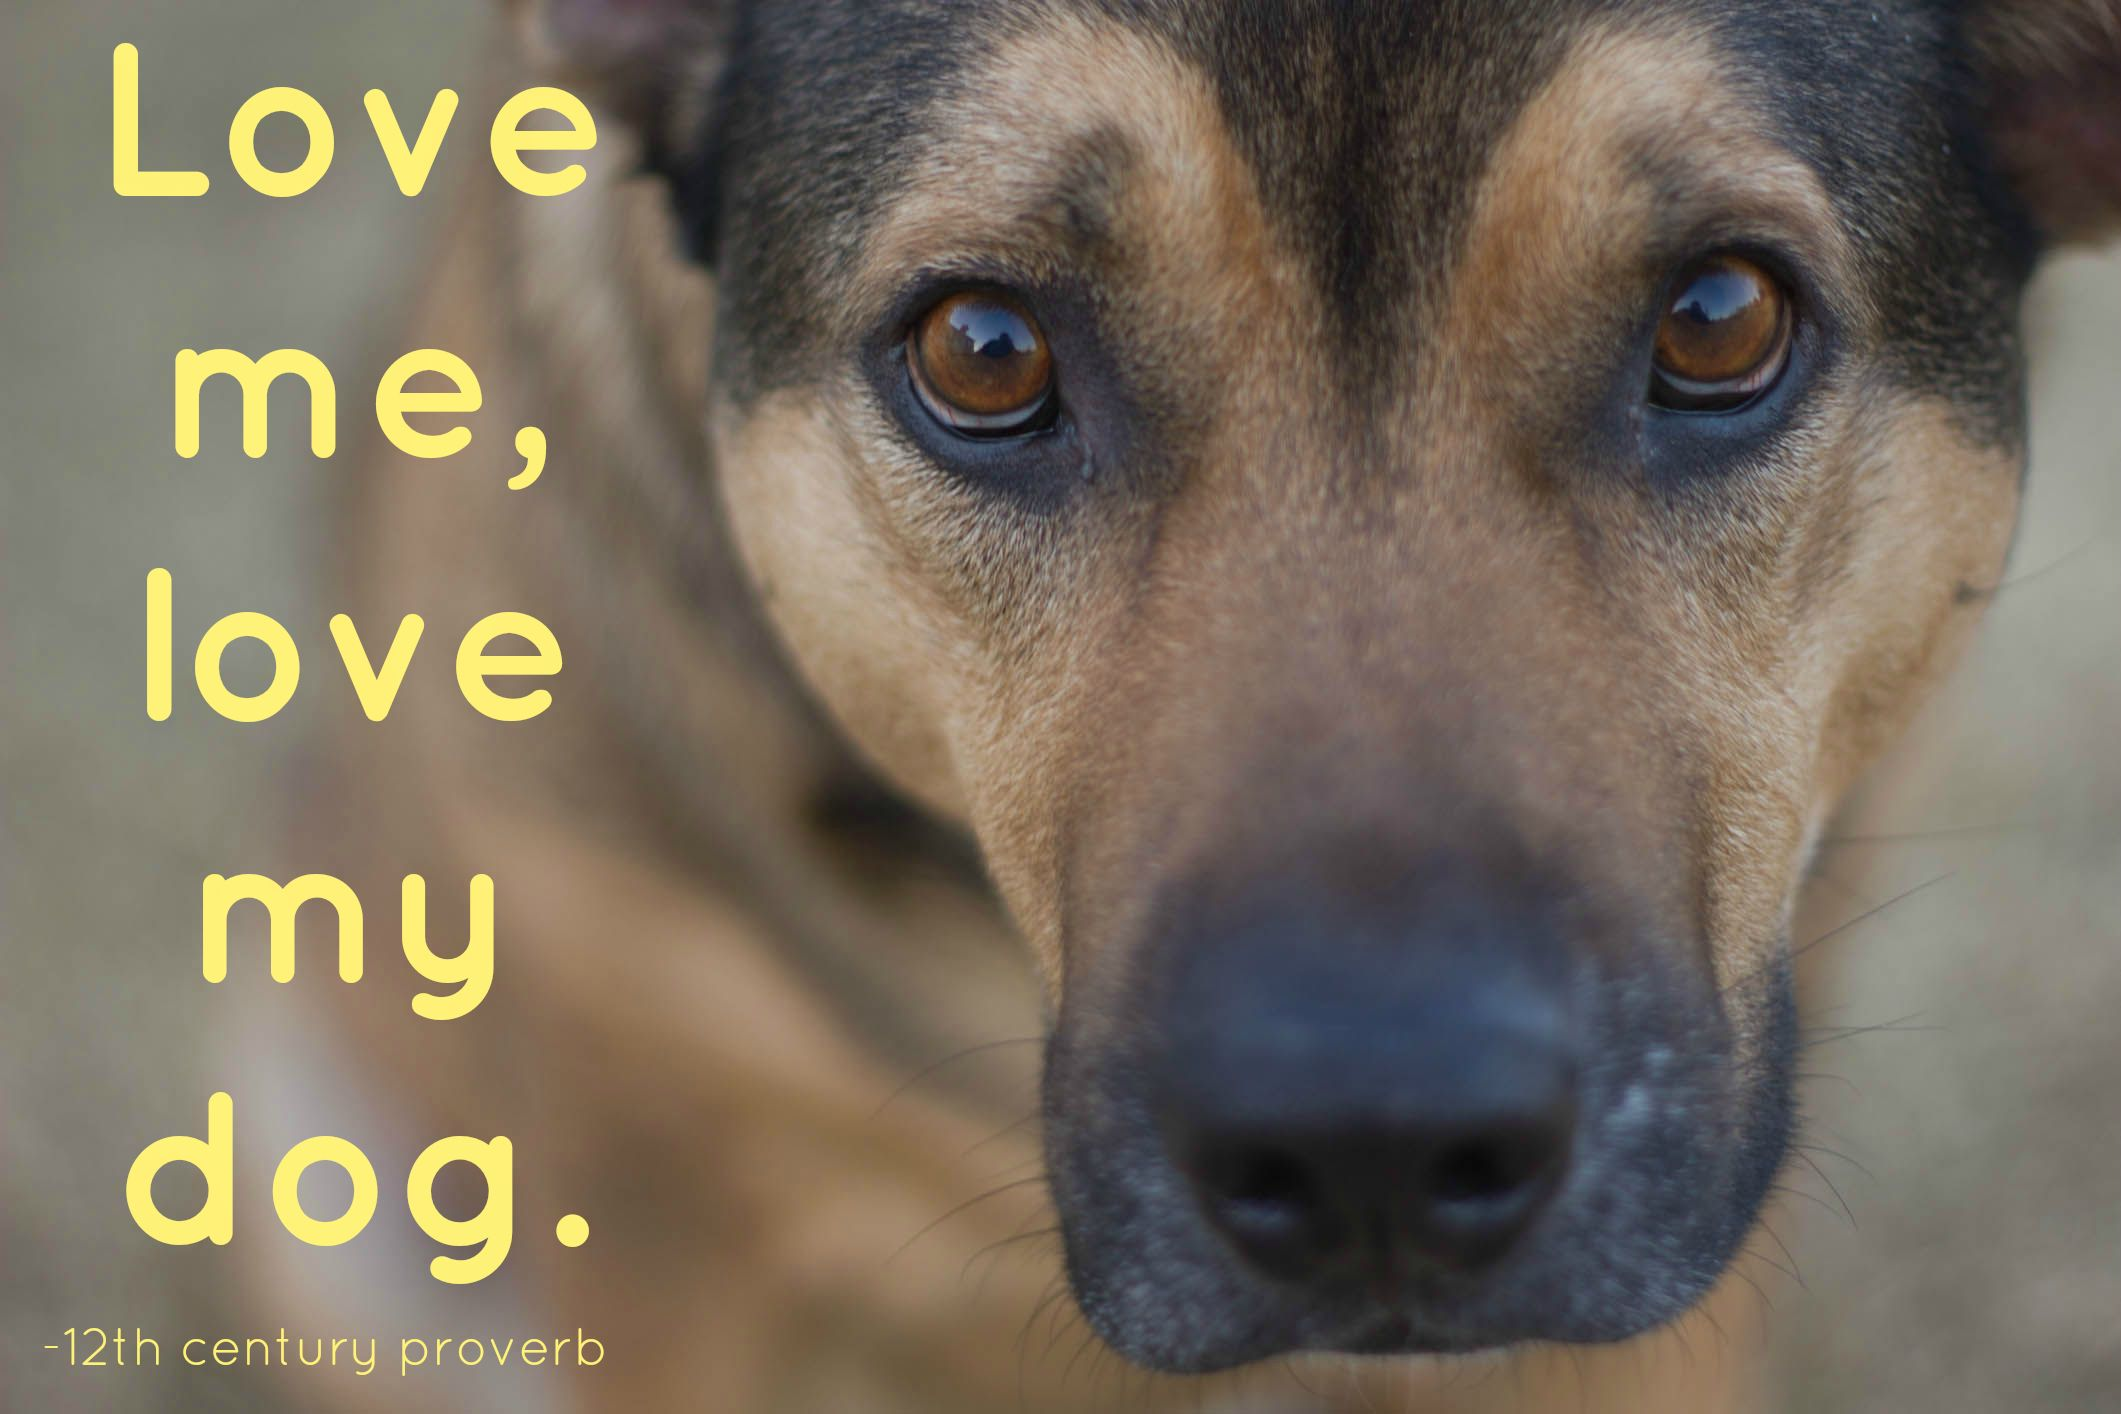 For Animal People Animal Quotes We Love Dog growling